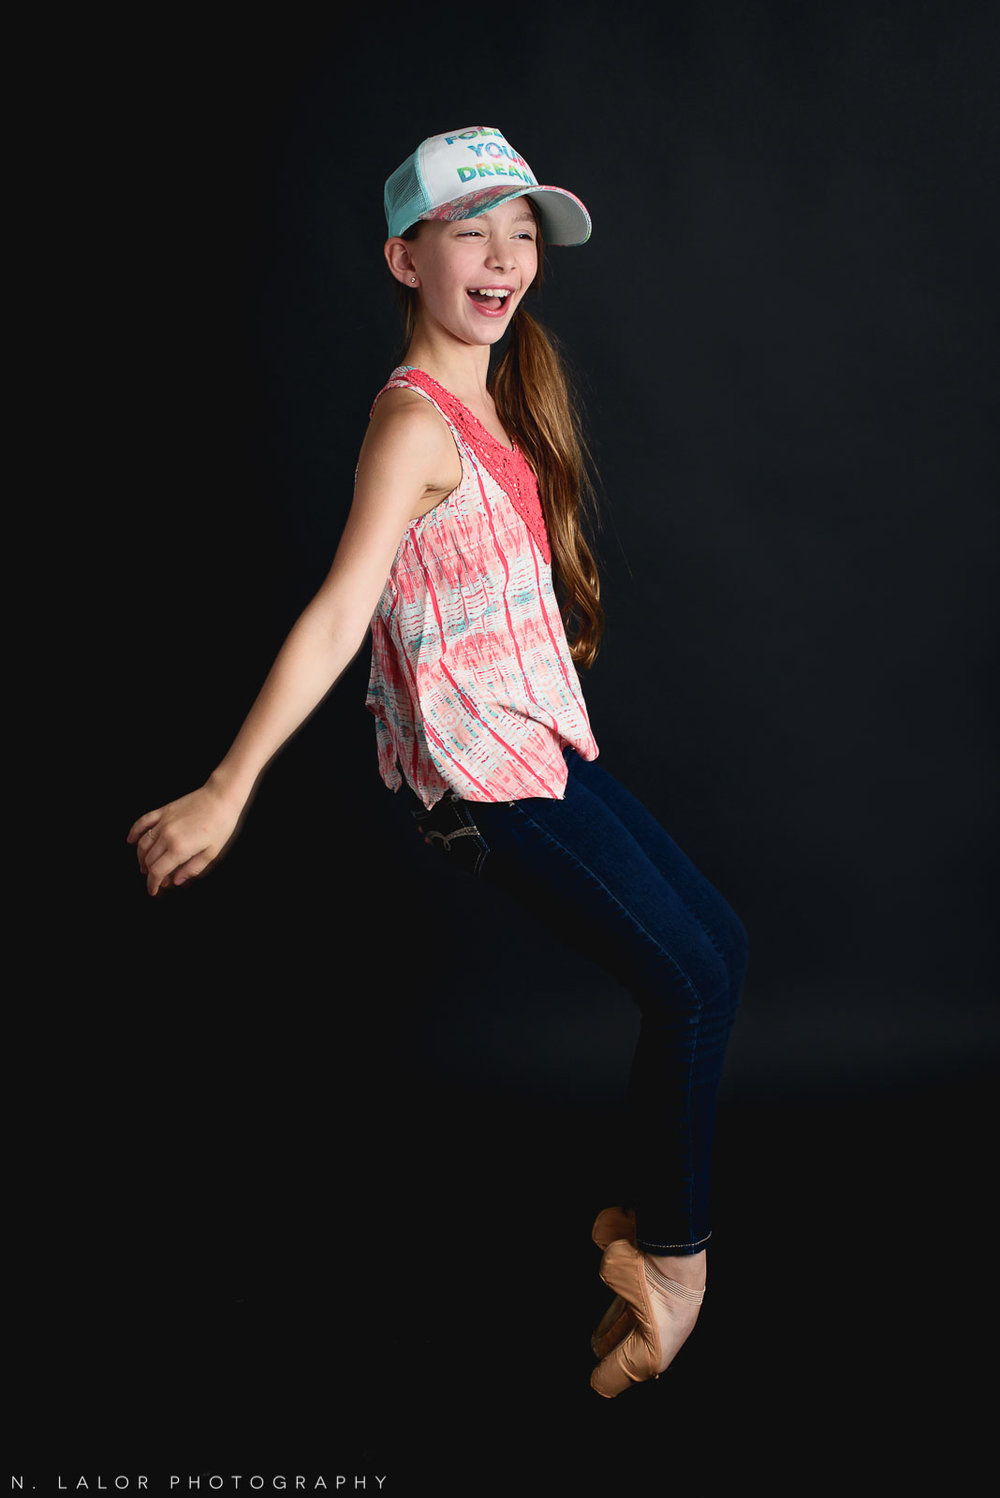 Having fun on pointe. Tween ballerina photoshoot with N. Lalor Photography. Greenwich, Connecticut.